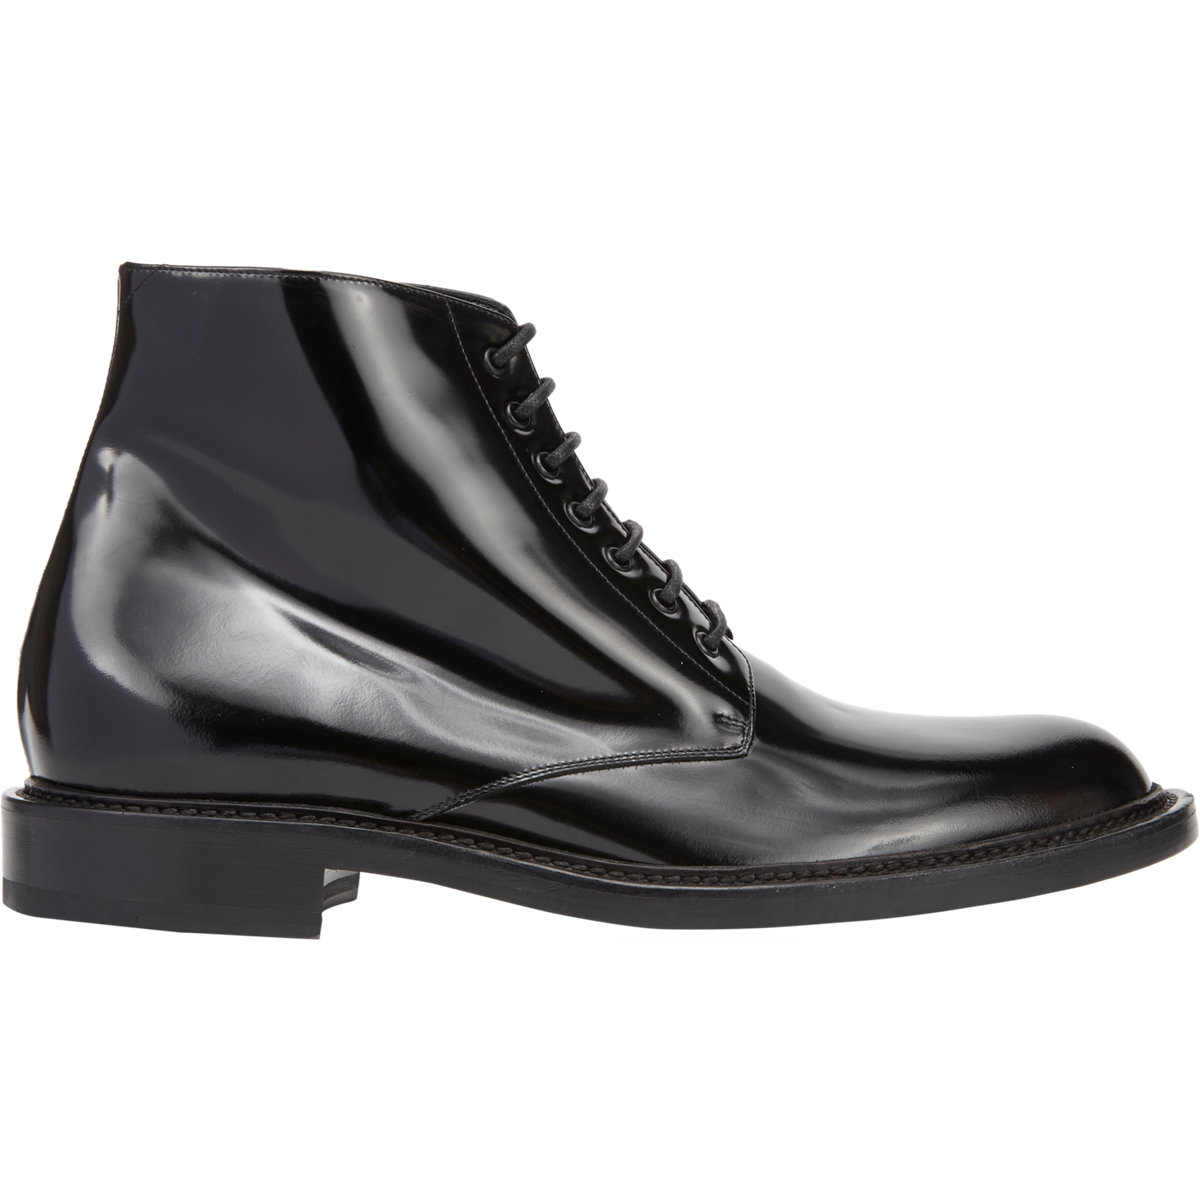 dc623e65566 Saint Laurent army Boots in Black for Men - Lyst